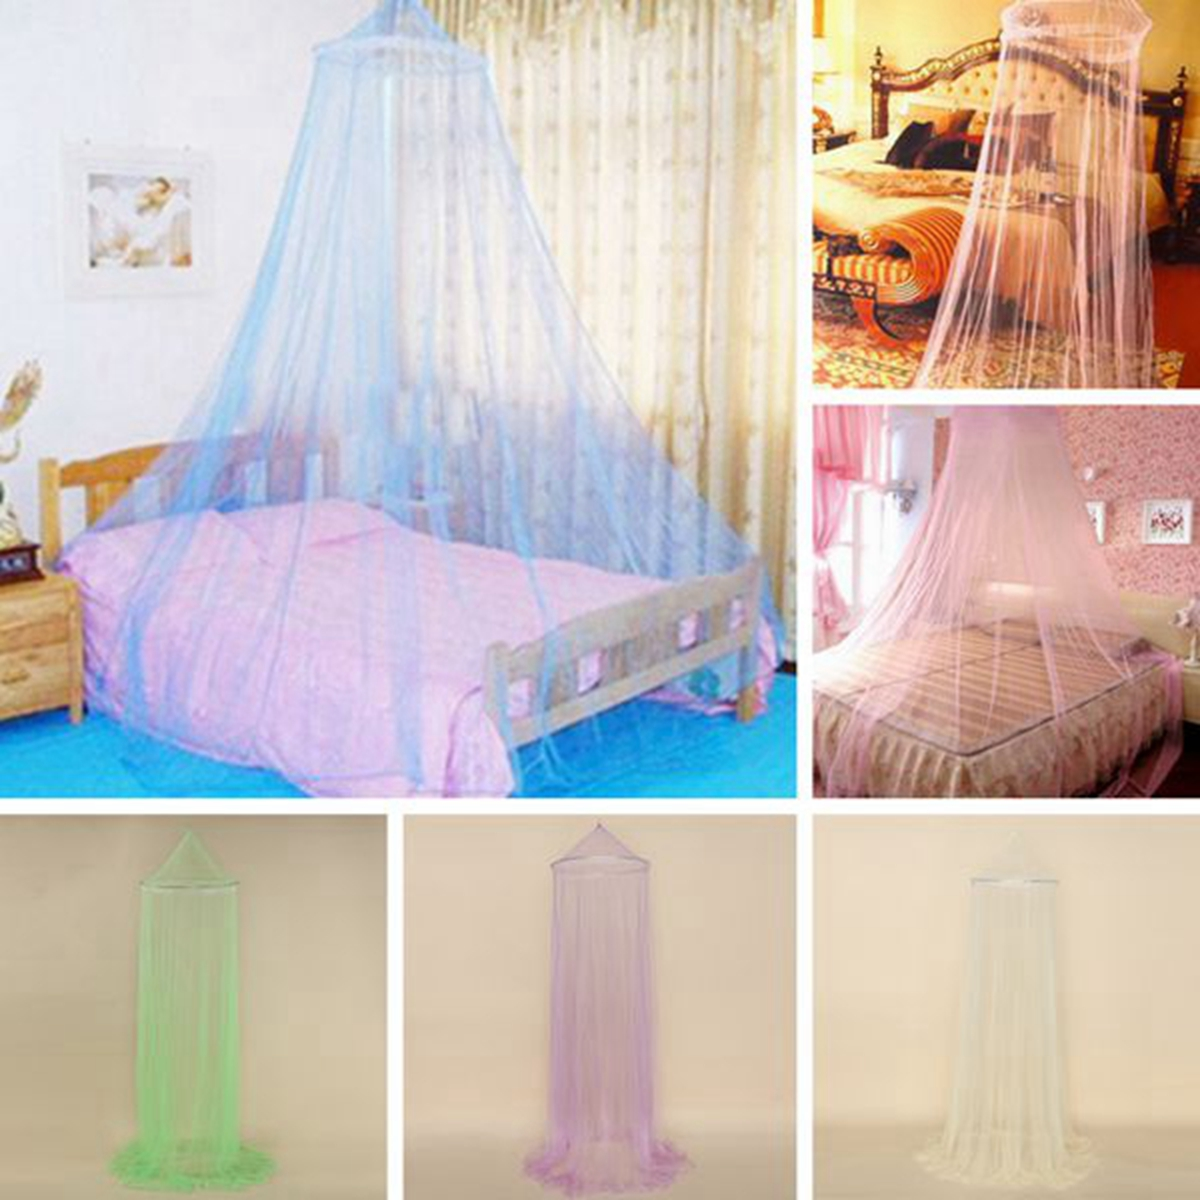 uk crochet net ciel lit mousseline moustiquaire baldaquin voile arceau dentelle ebay. Black Bedroom Furniture Sets. Home Design Ideas